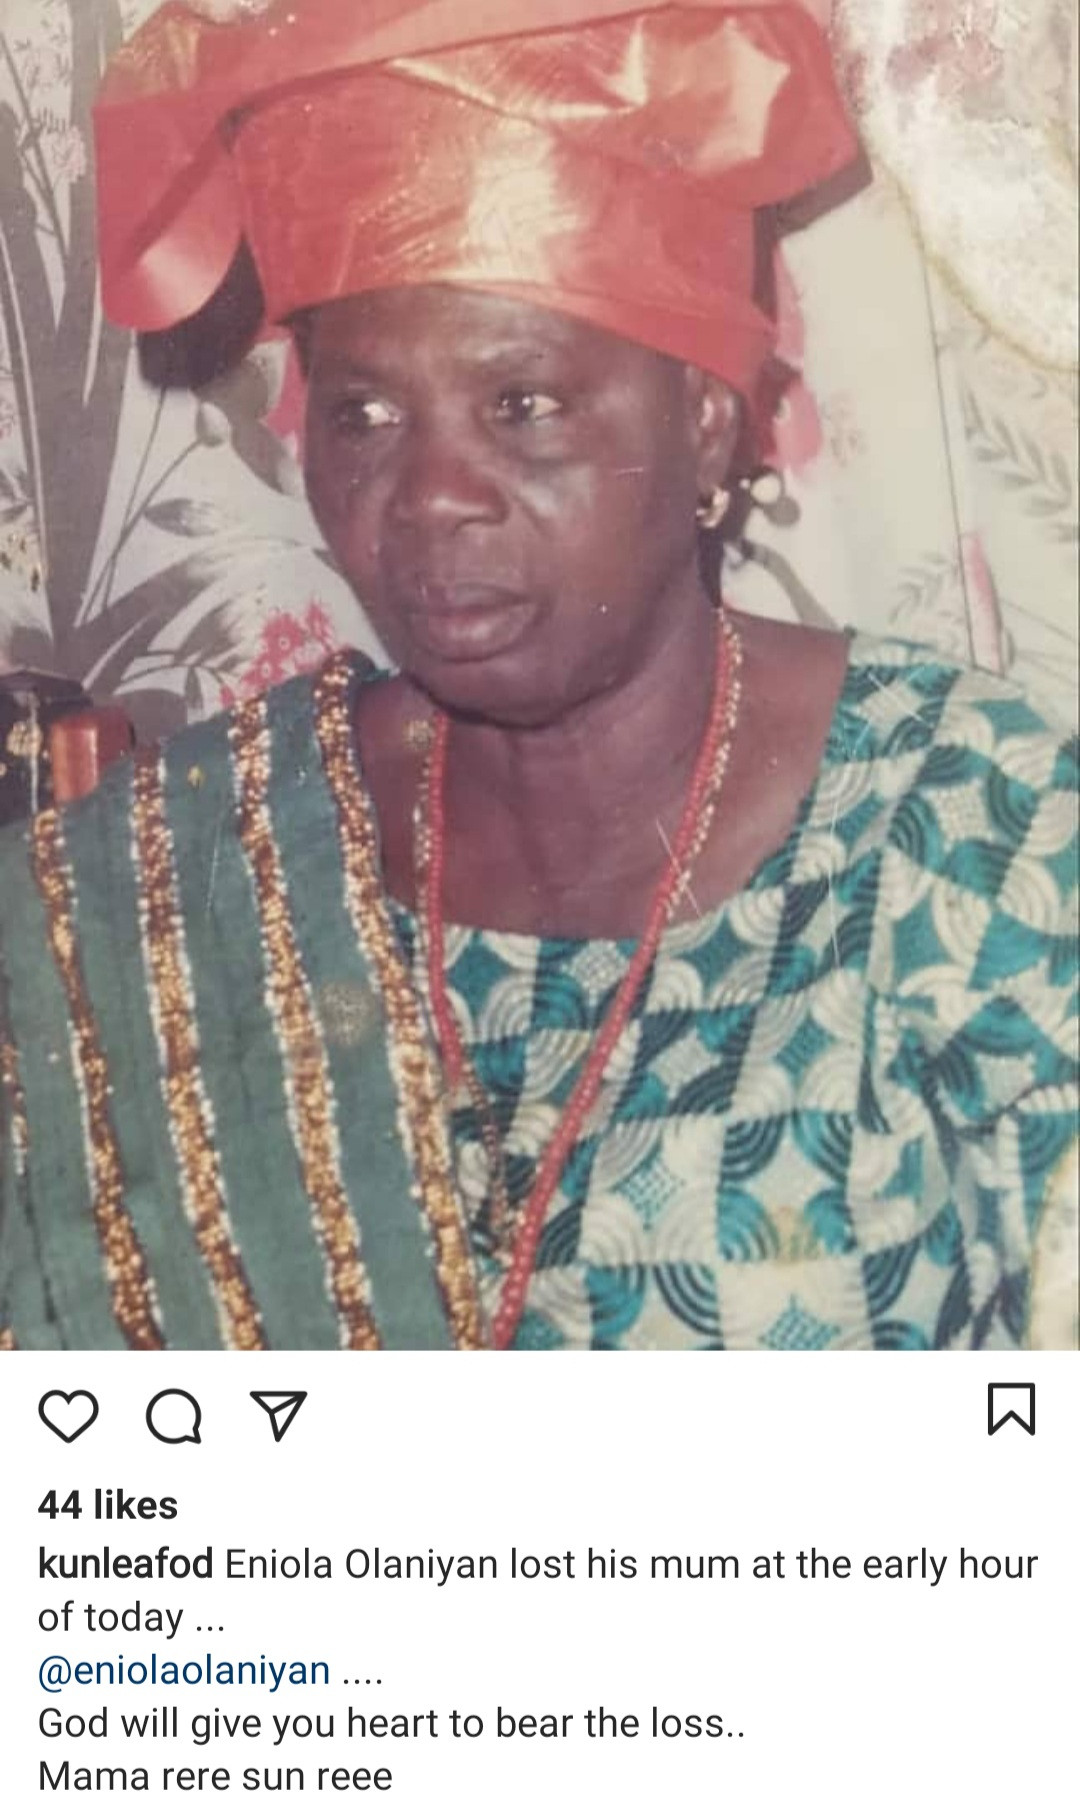 Actor Eniola Olaniyan loses his mum